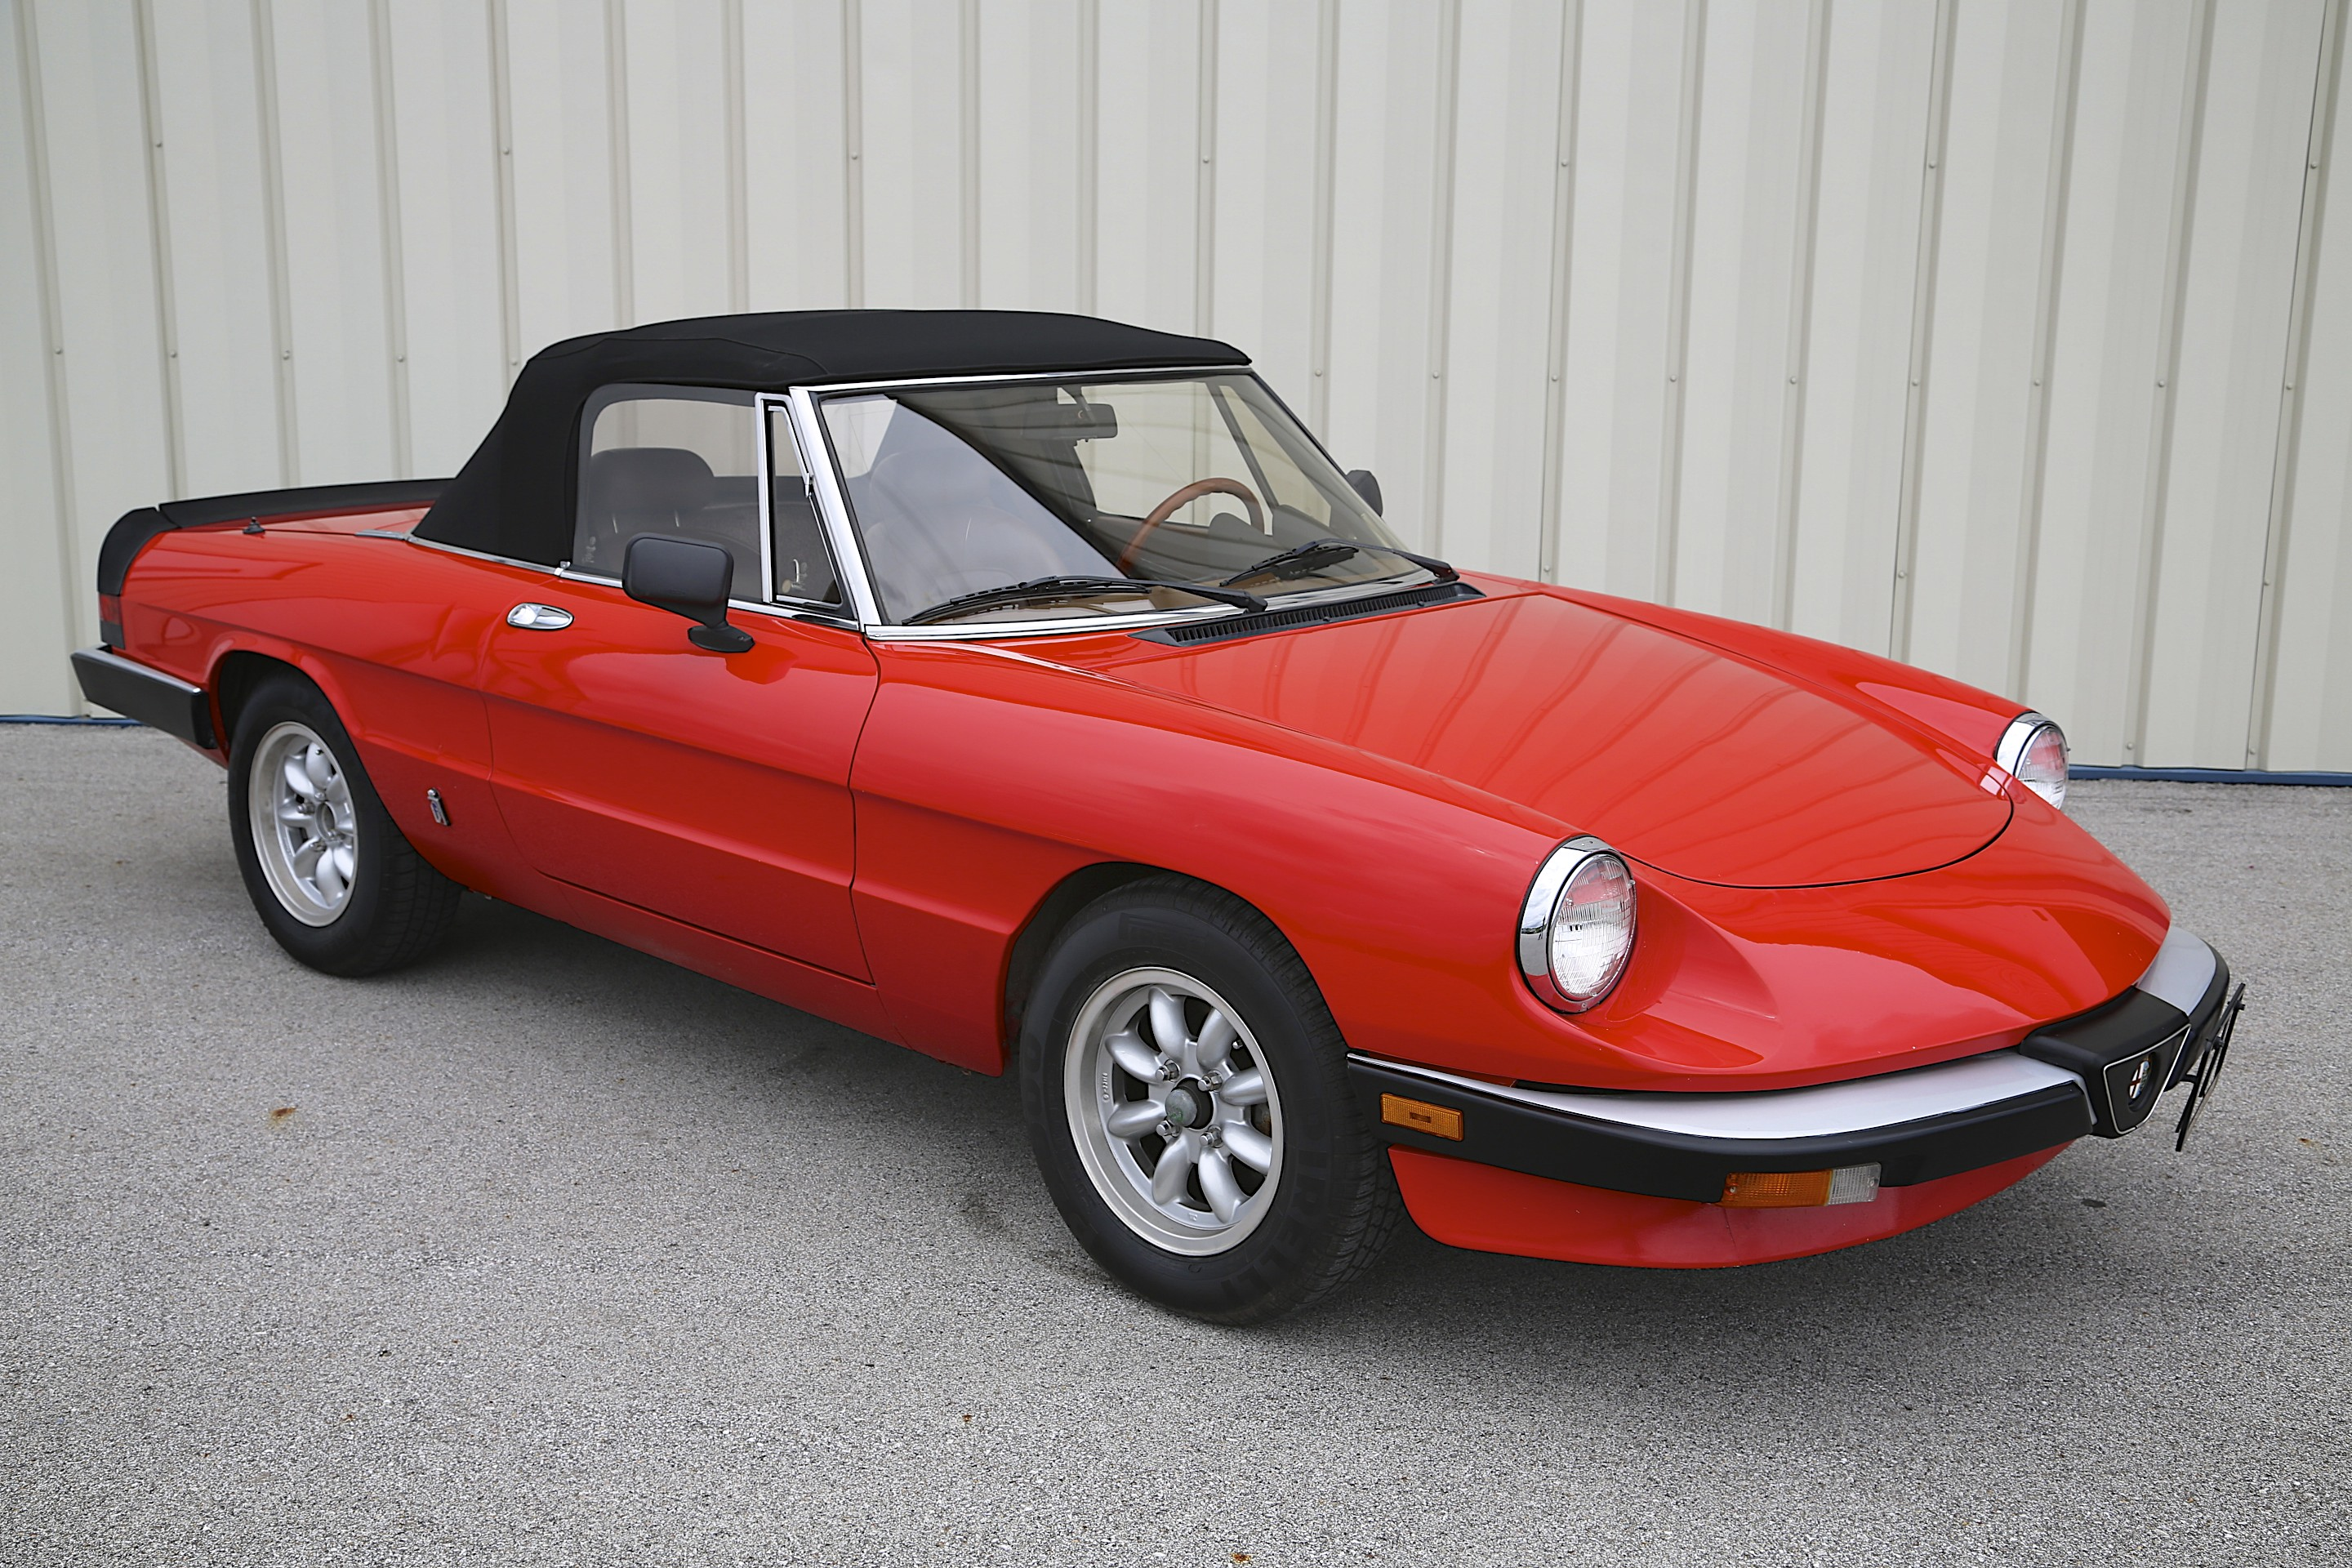 1985 alfa romeo spider graduate skunk river restorations. Black Bedroom Furniture Sets. Home Design Ideas